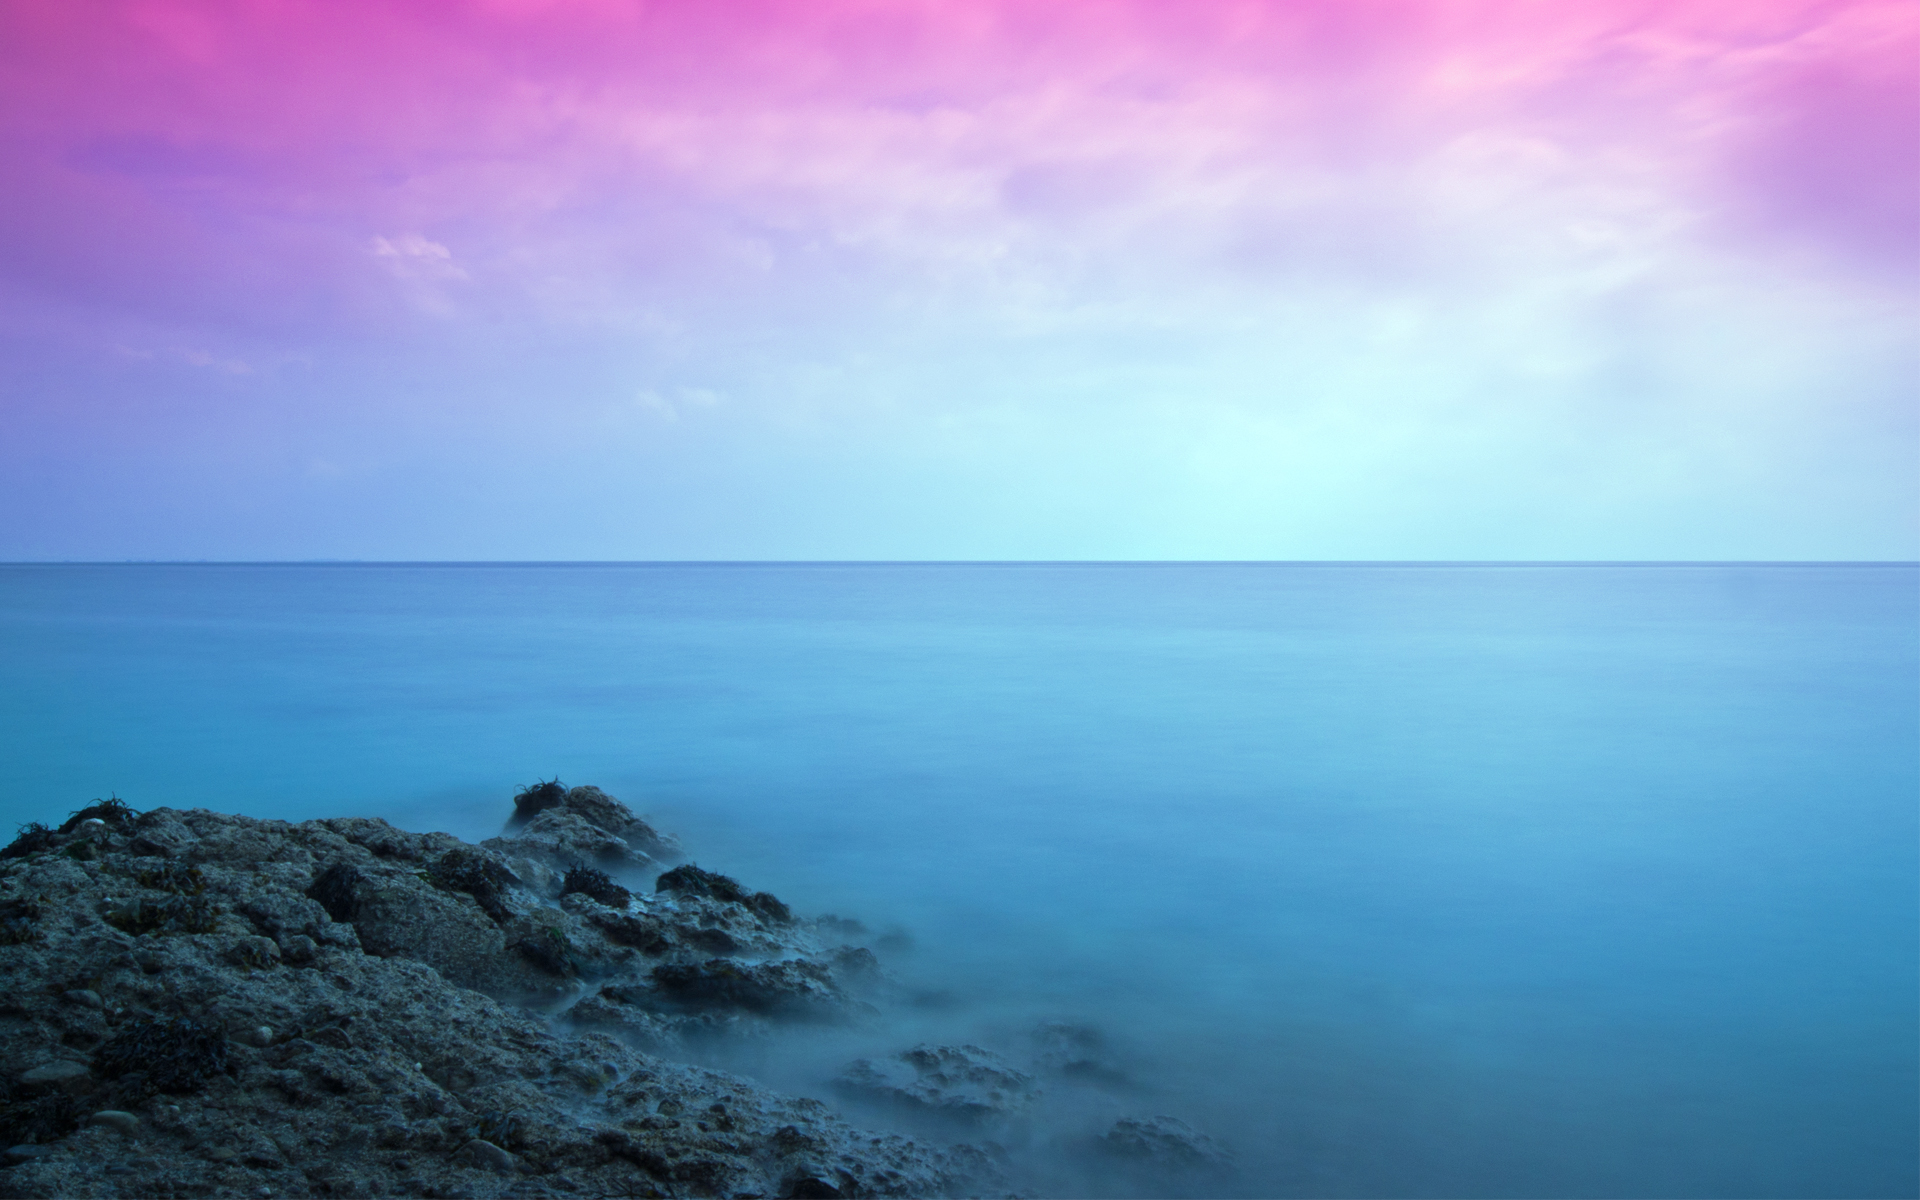 Colorful Seascape Wallpapers HD Wallpapers 1920x1200